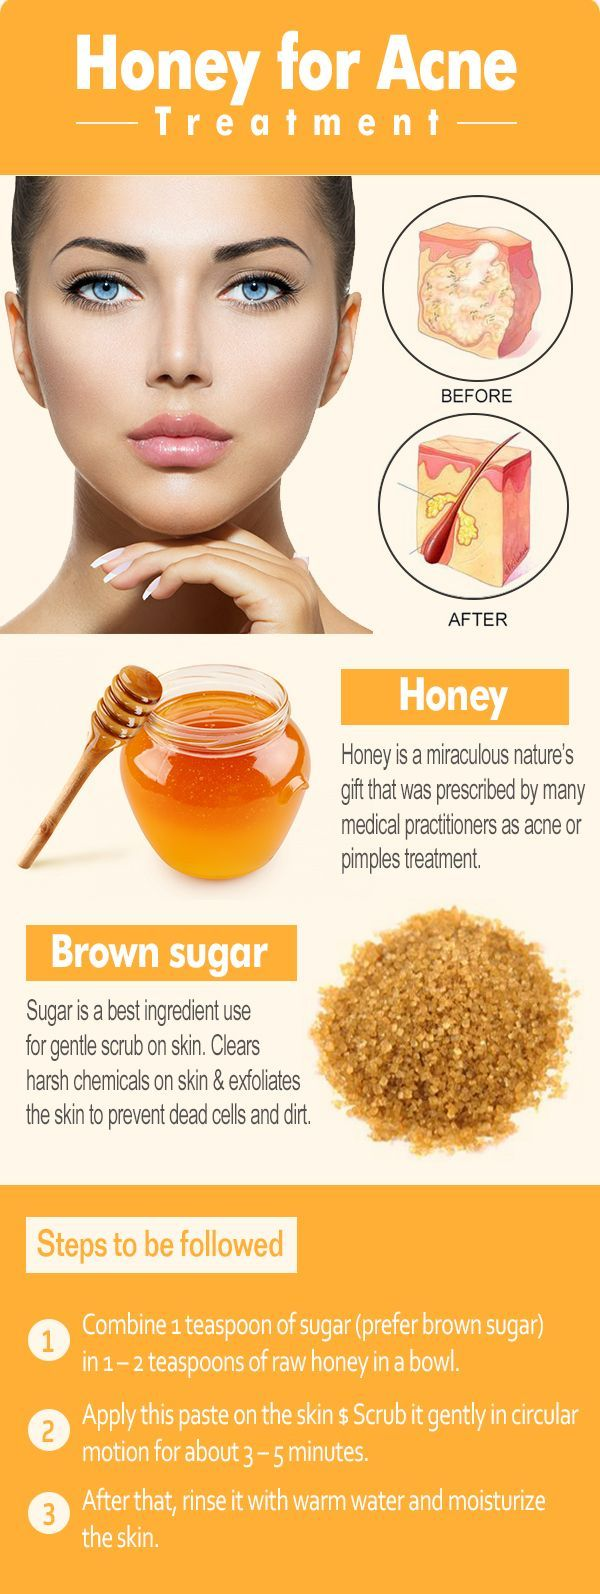 Cure Acne with Honey  Acne and blackheads  Pinterest  Pimple